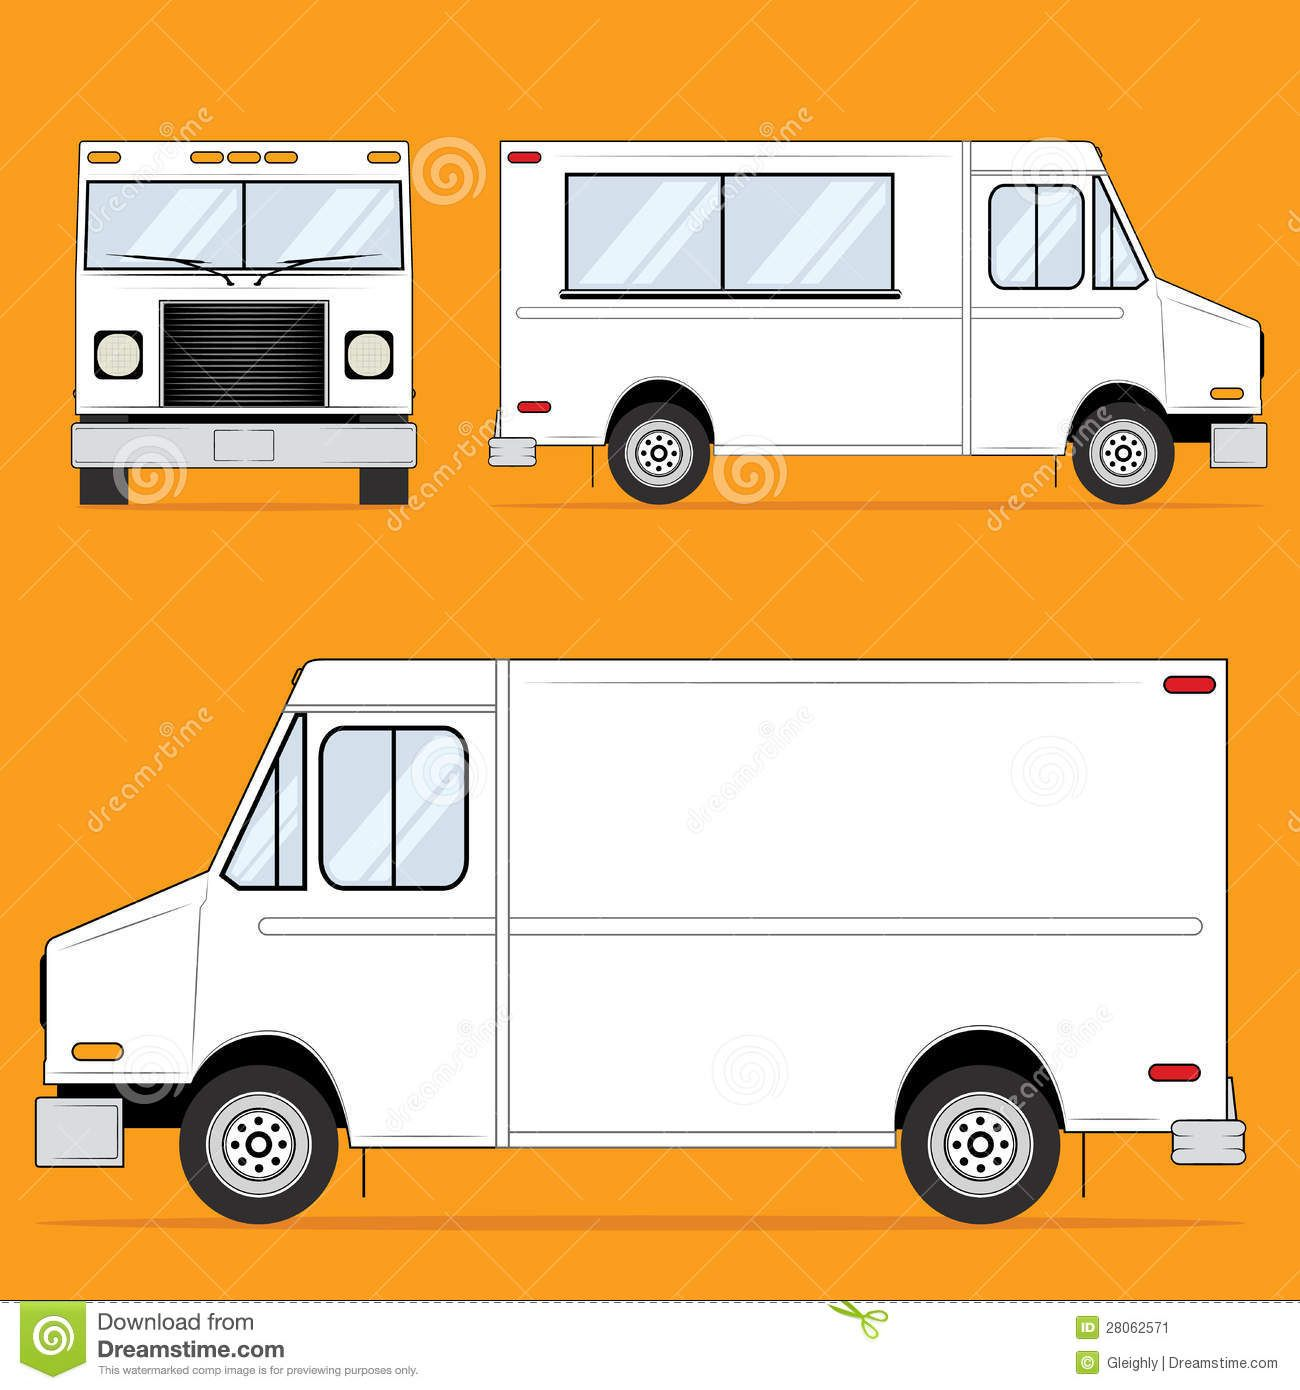 Food truck blank stock image image 28062571 proyectos for Food truck blueprint